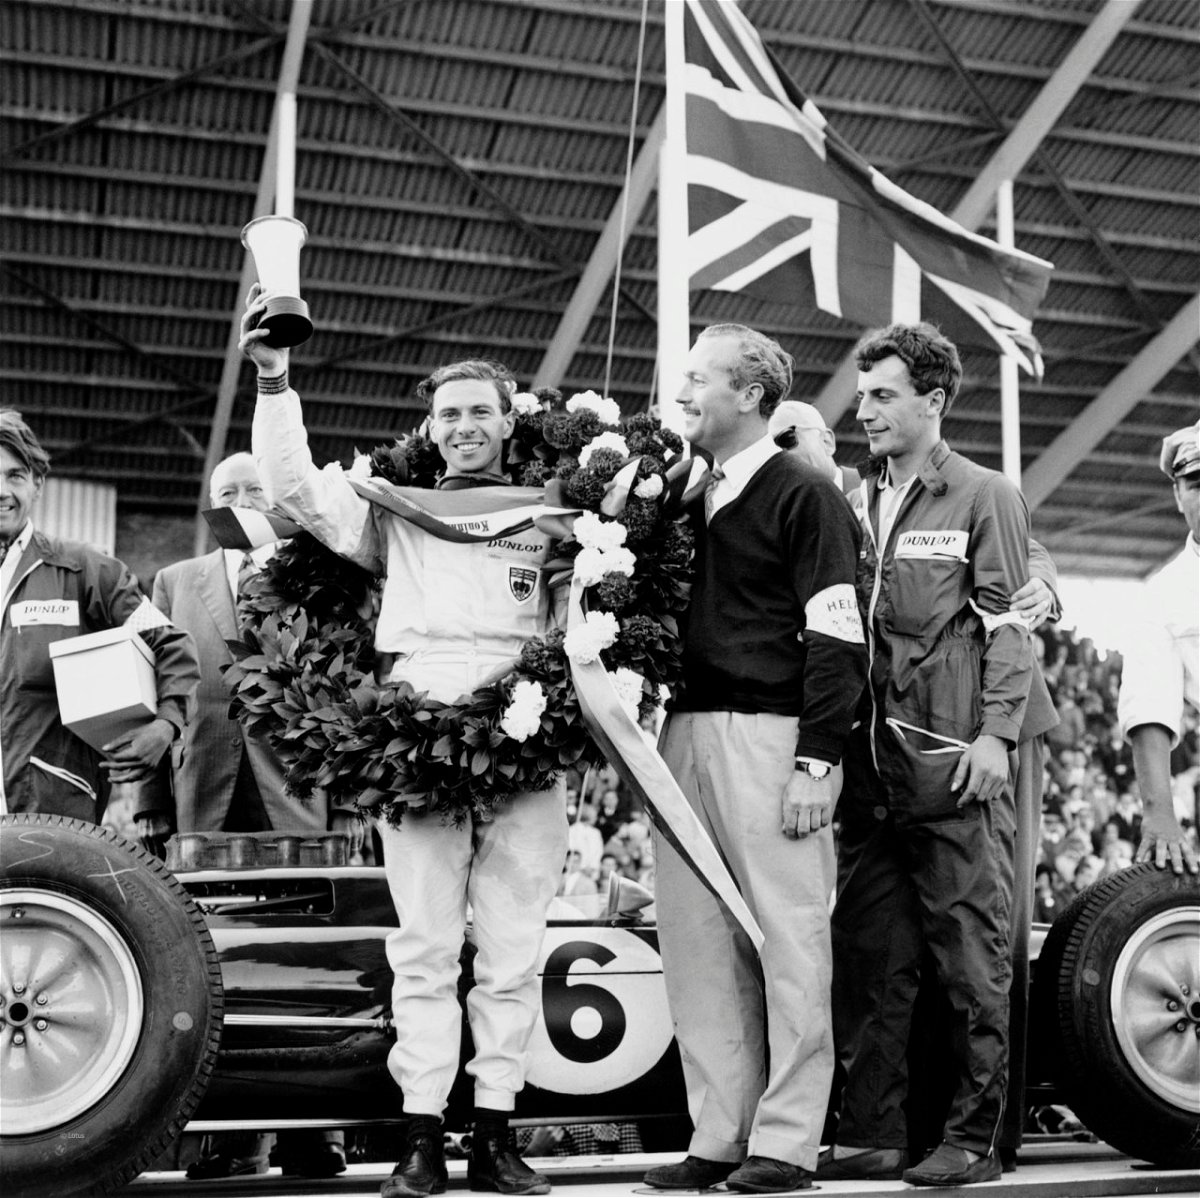 Jim Clark (pictured here in 1963) is a 5 time winner of the British Grand Prix. His tally is only matched by Alain Prost.